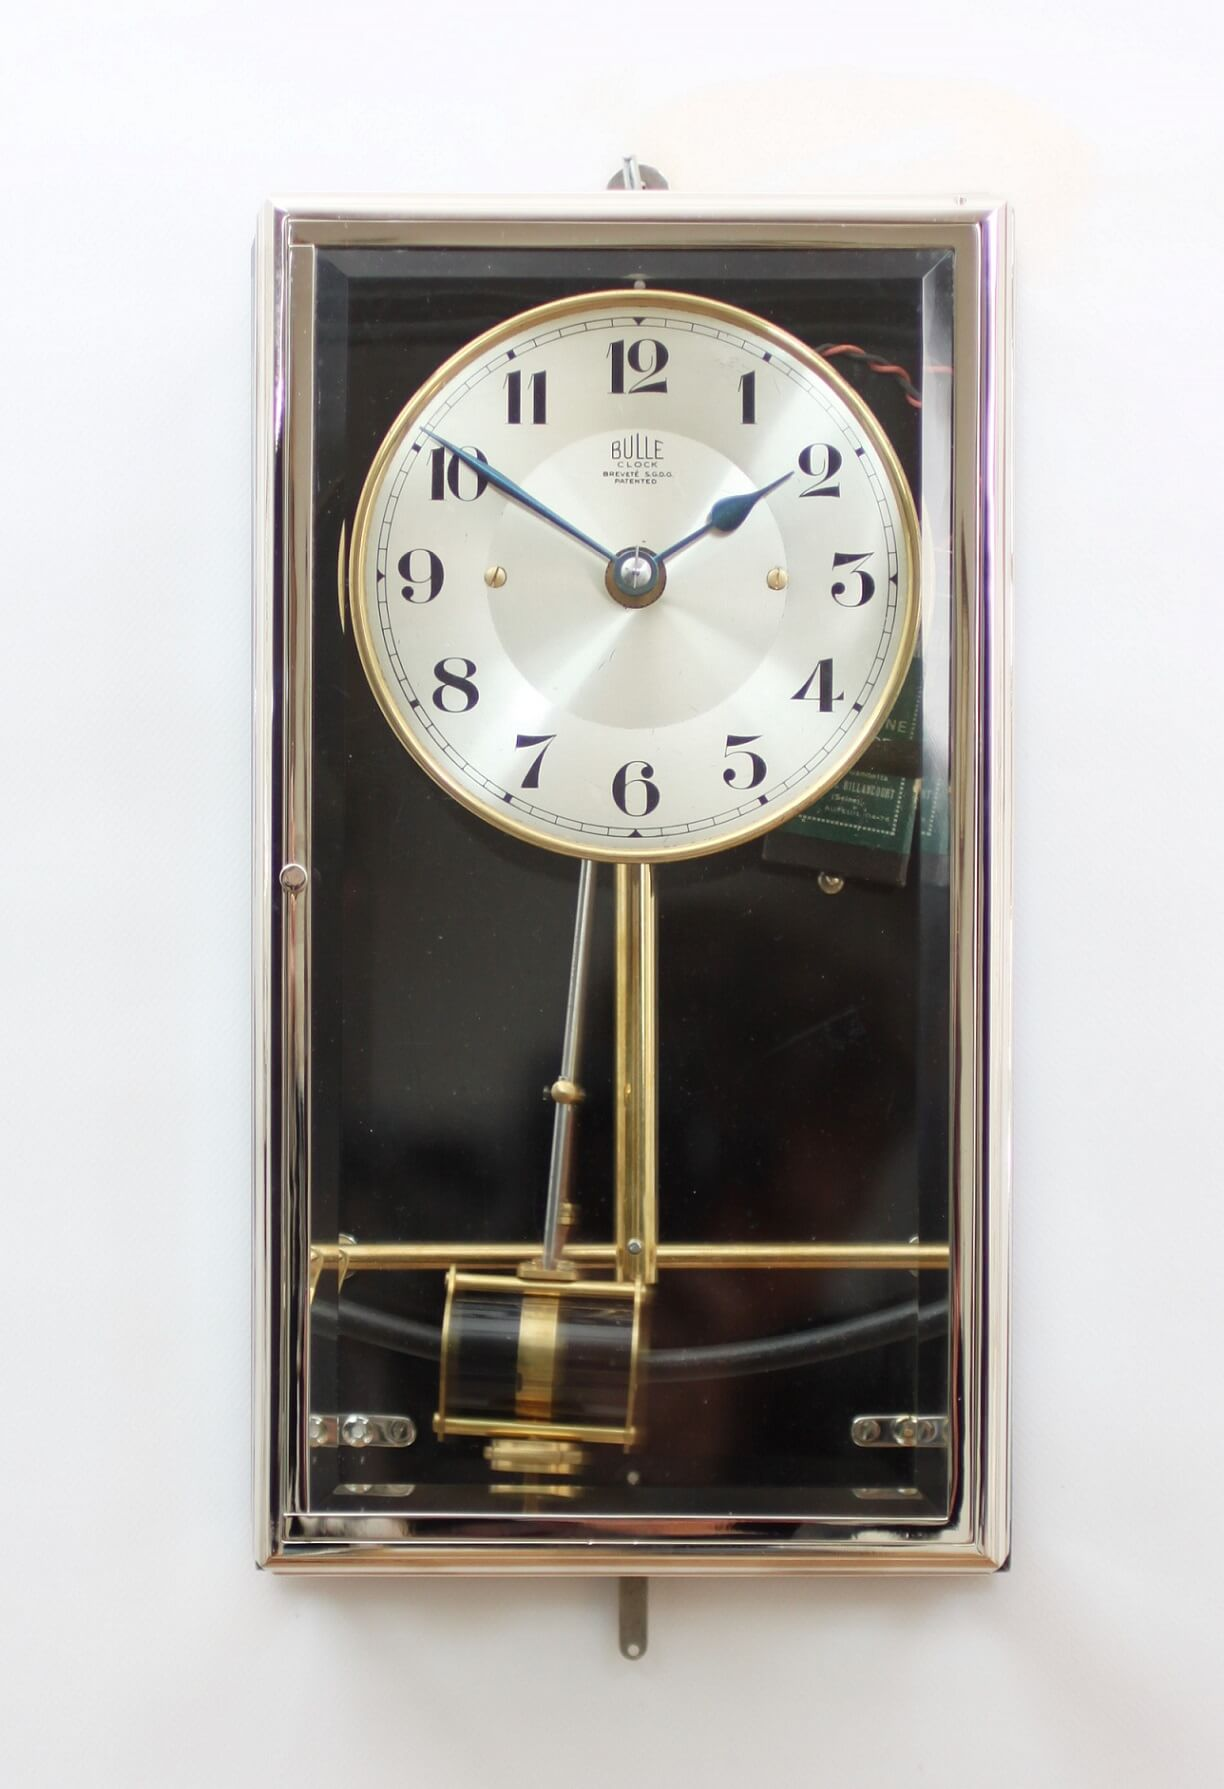 A French Nickel Plated Electrical Timepiece Bulle Clock